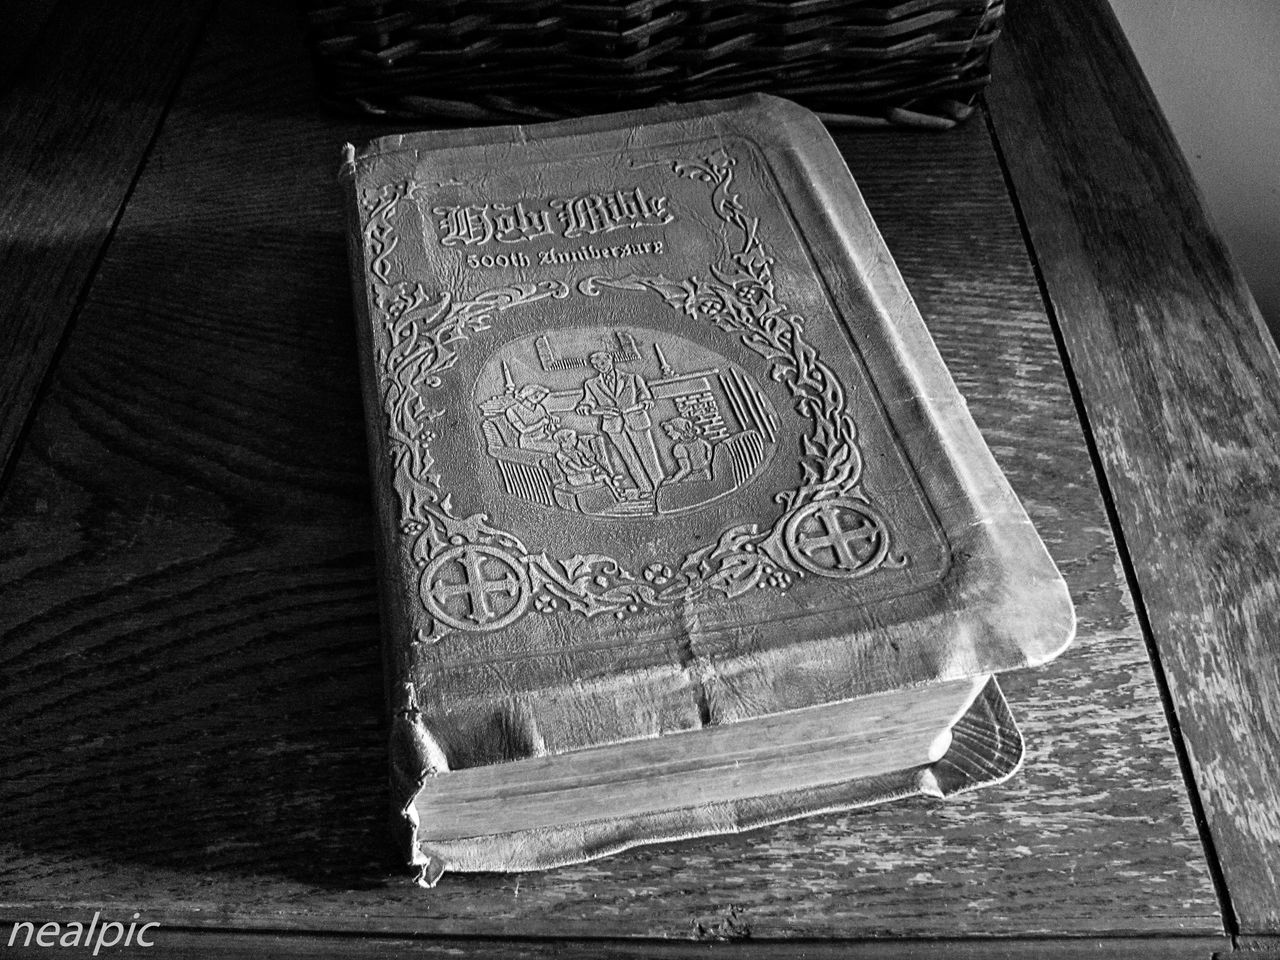 Antique Bible Close-up Day Indoors  Natural Light Portrait No People Still Life Photography